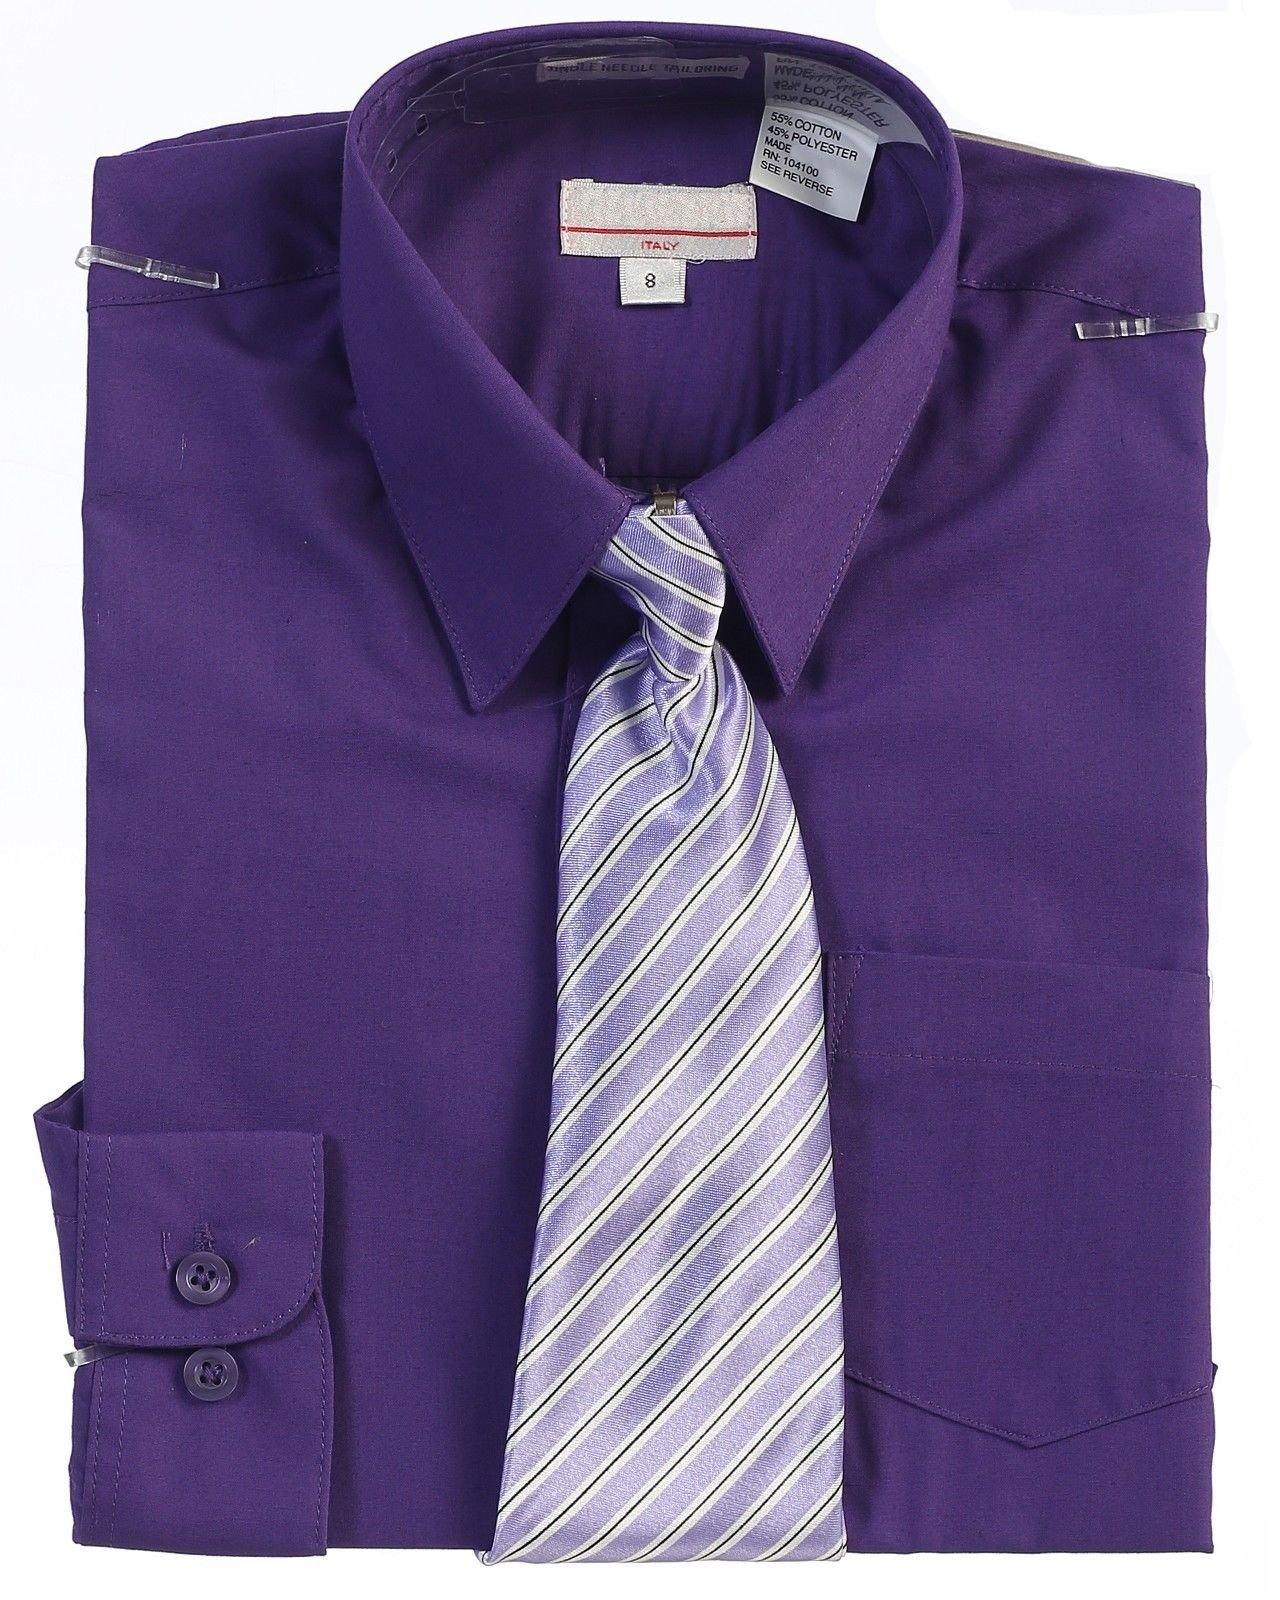 Boys Dark Purple Dress Shirt